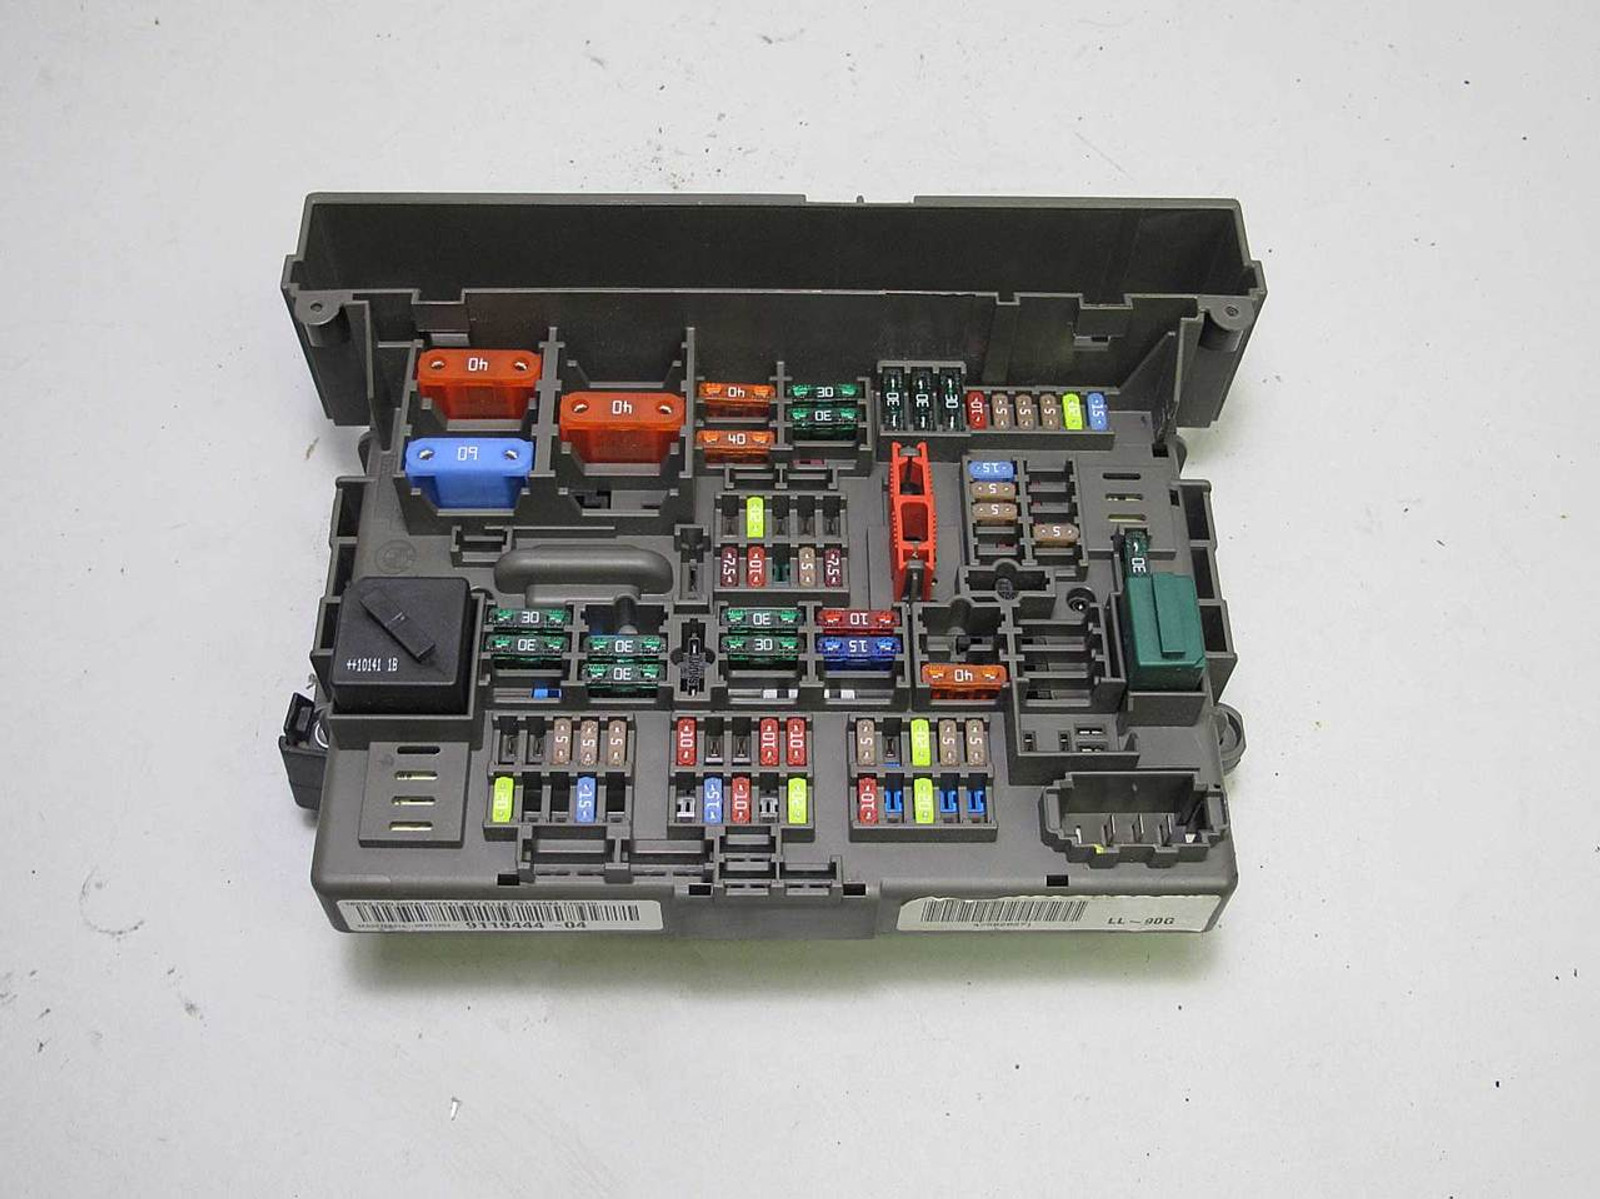 2001 Bmw 740il Fuse Box Trusted Wiring Diagrams 2000 Schematic Car Sale